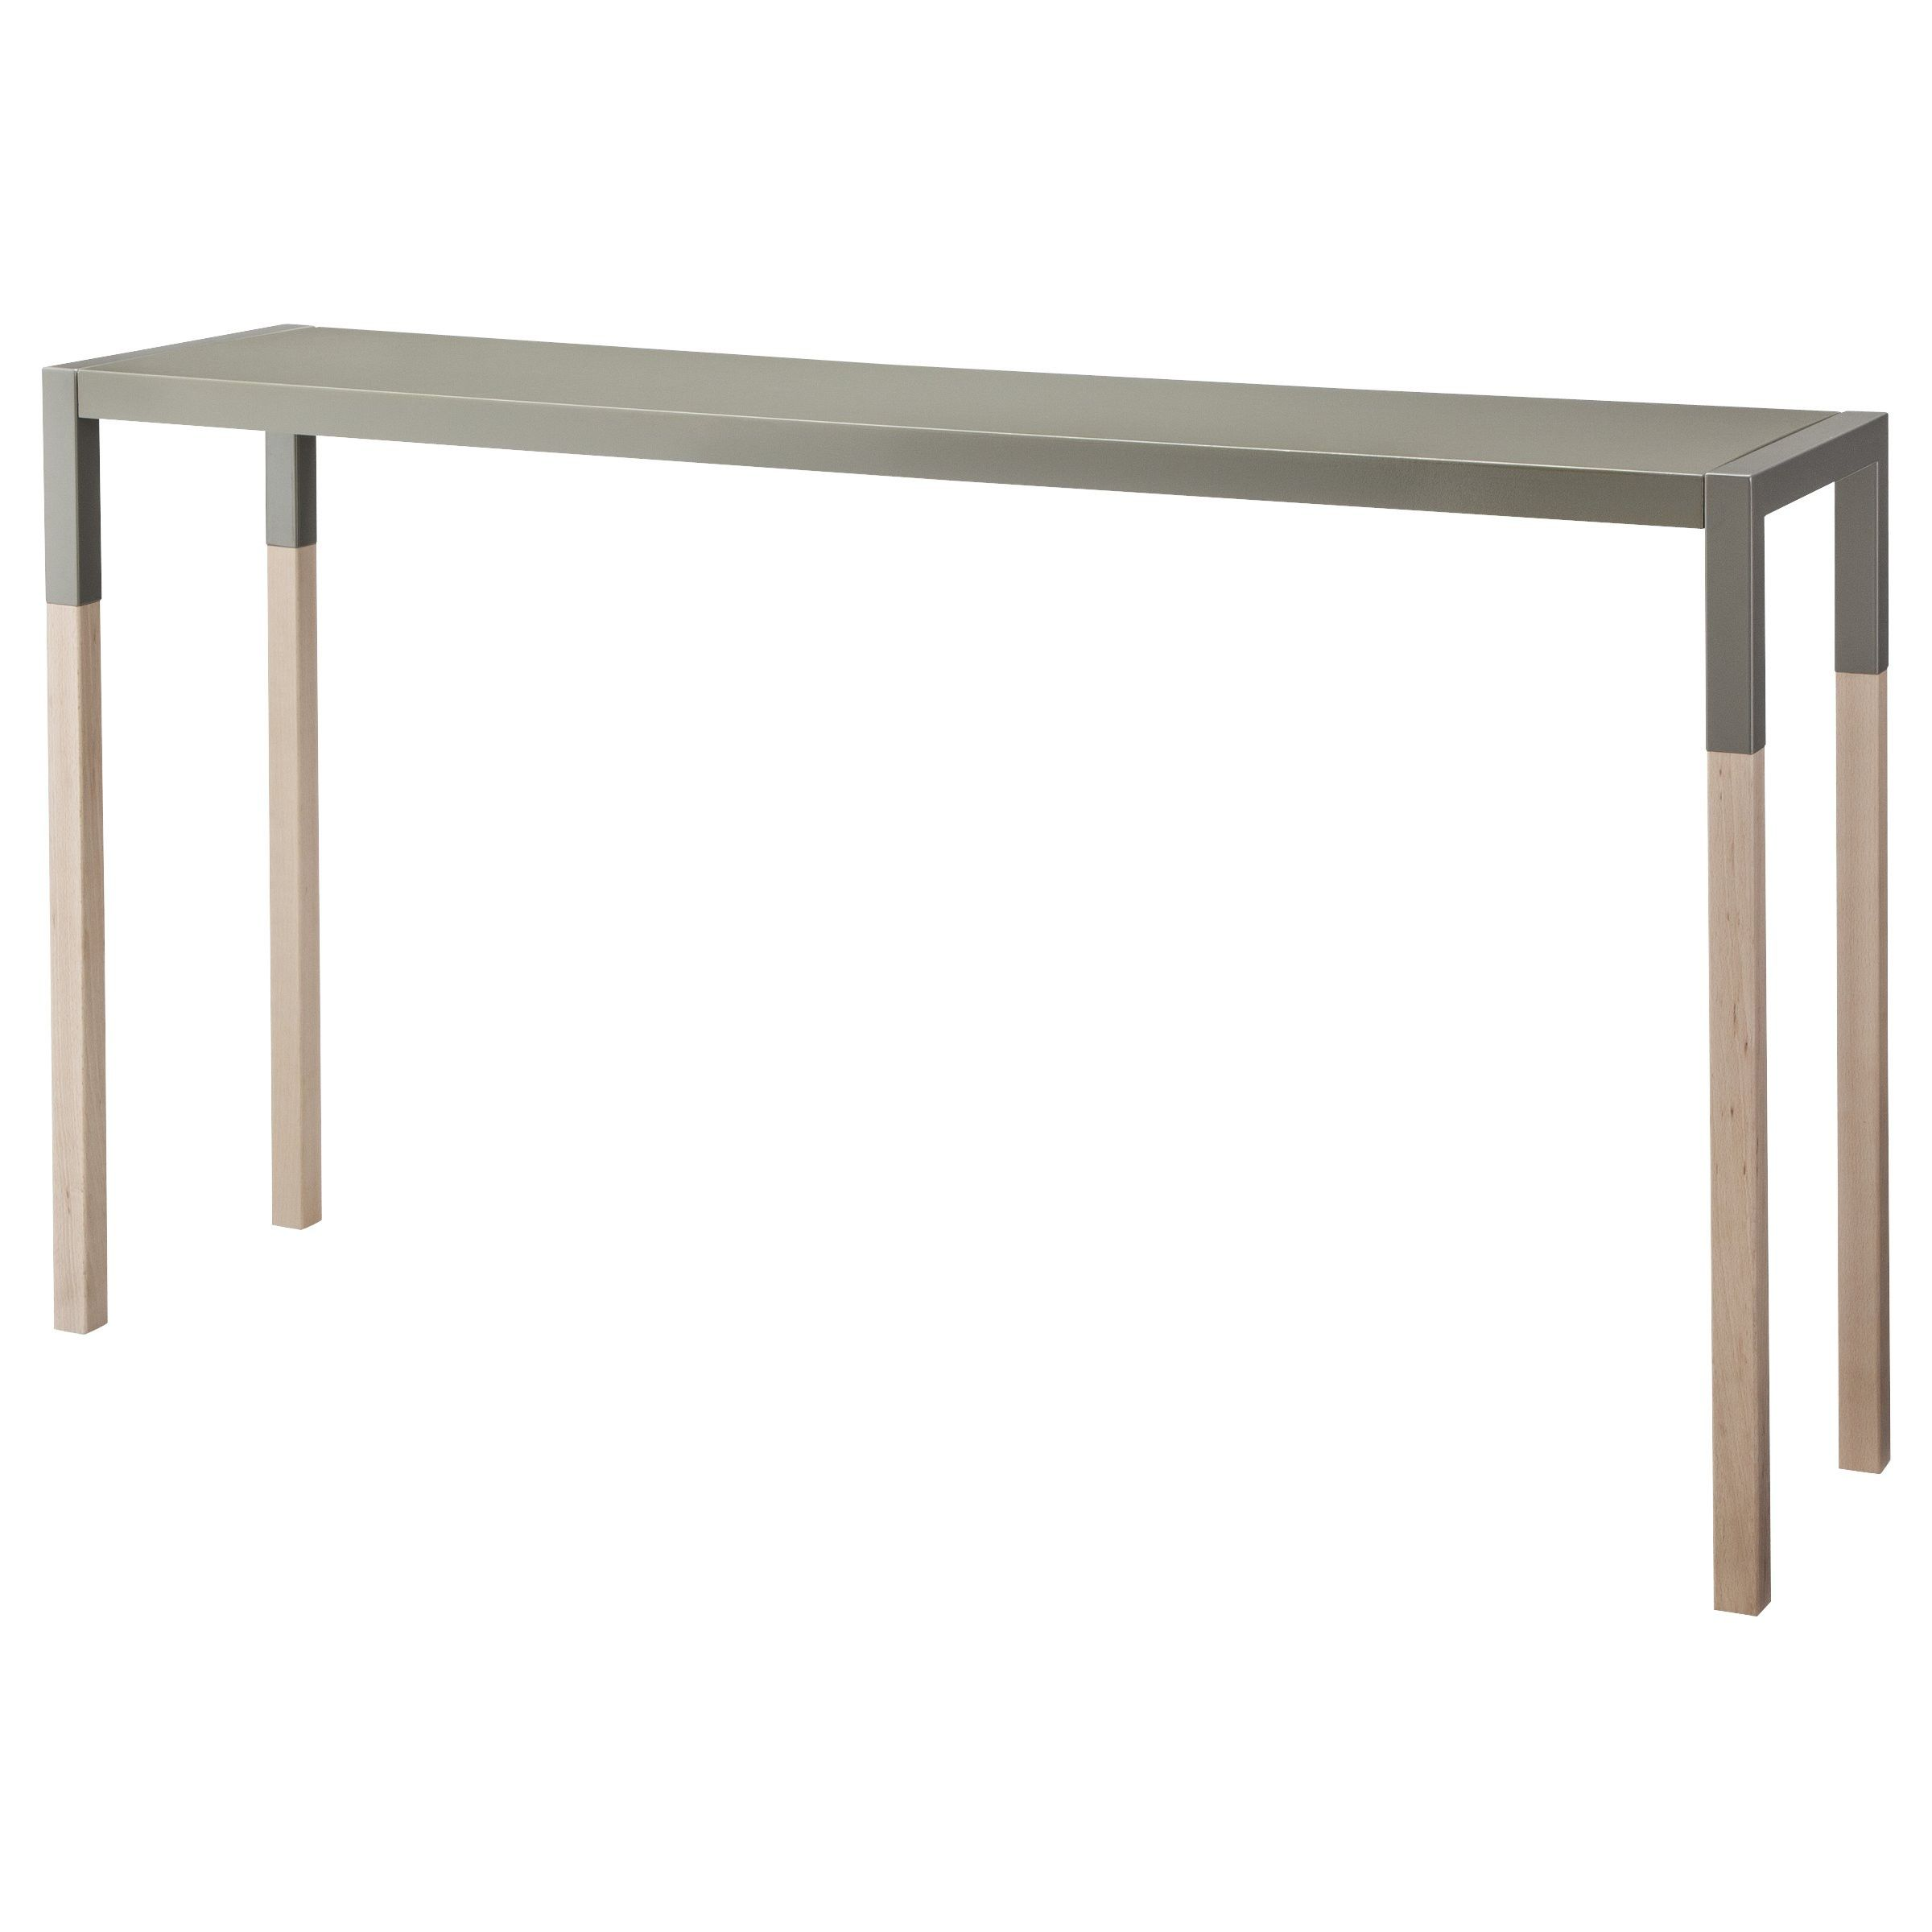 too by blu dot quad console table  light grayw  target  - too by blu dot quad console table  light grayw